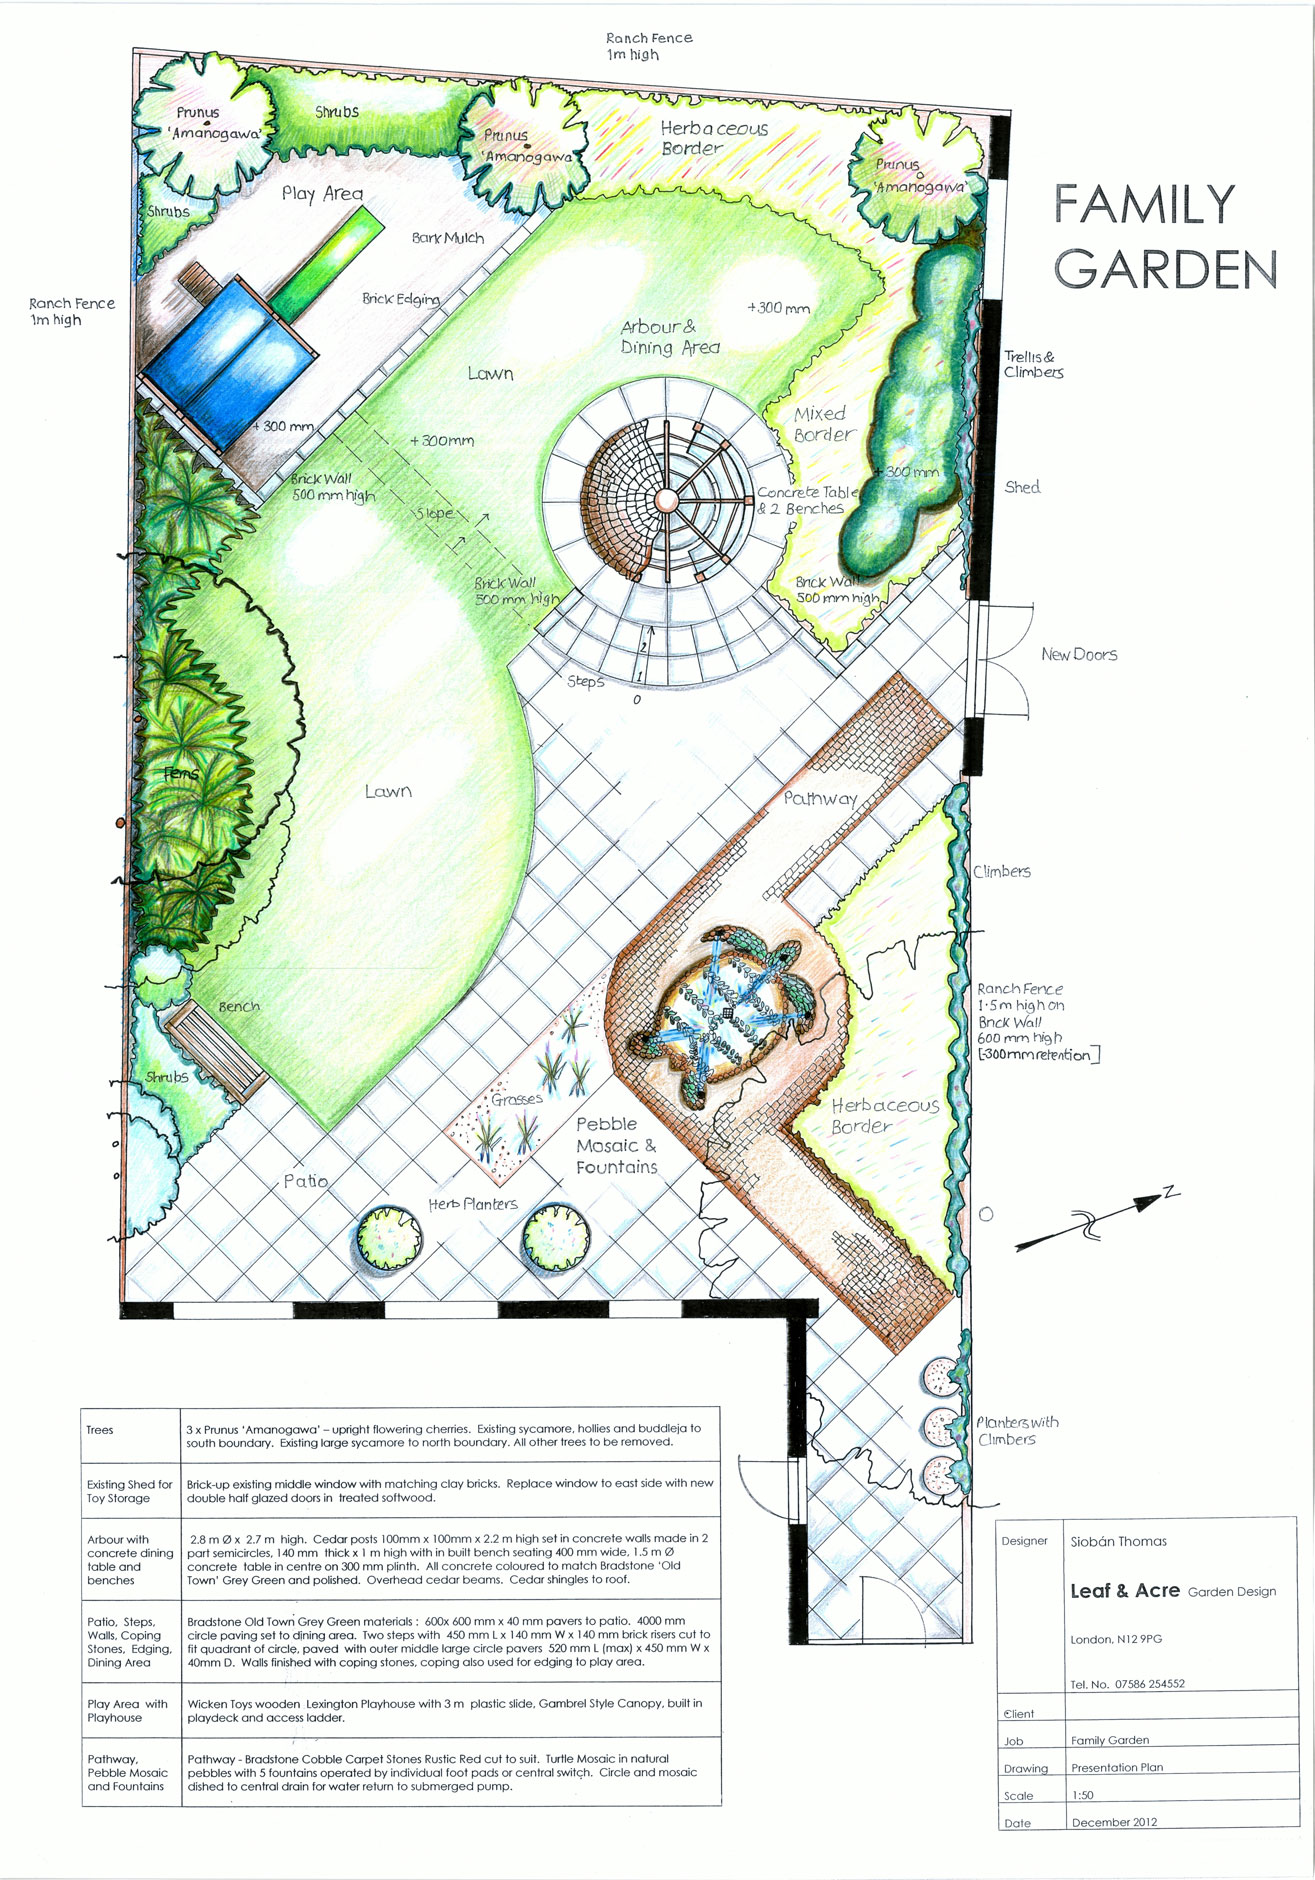 Garden design portfolio leaf and acre for Garden plot designs